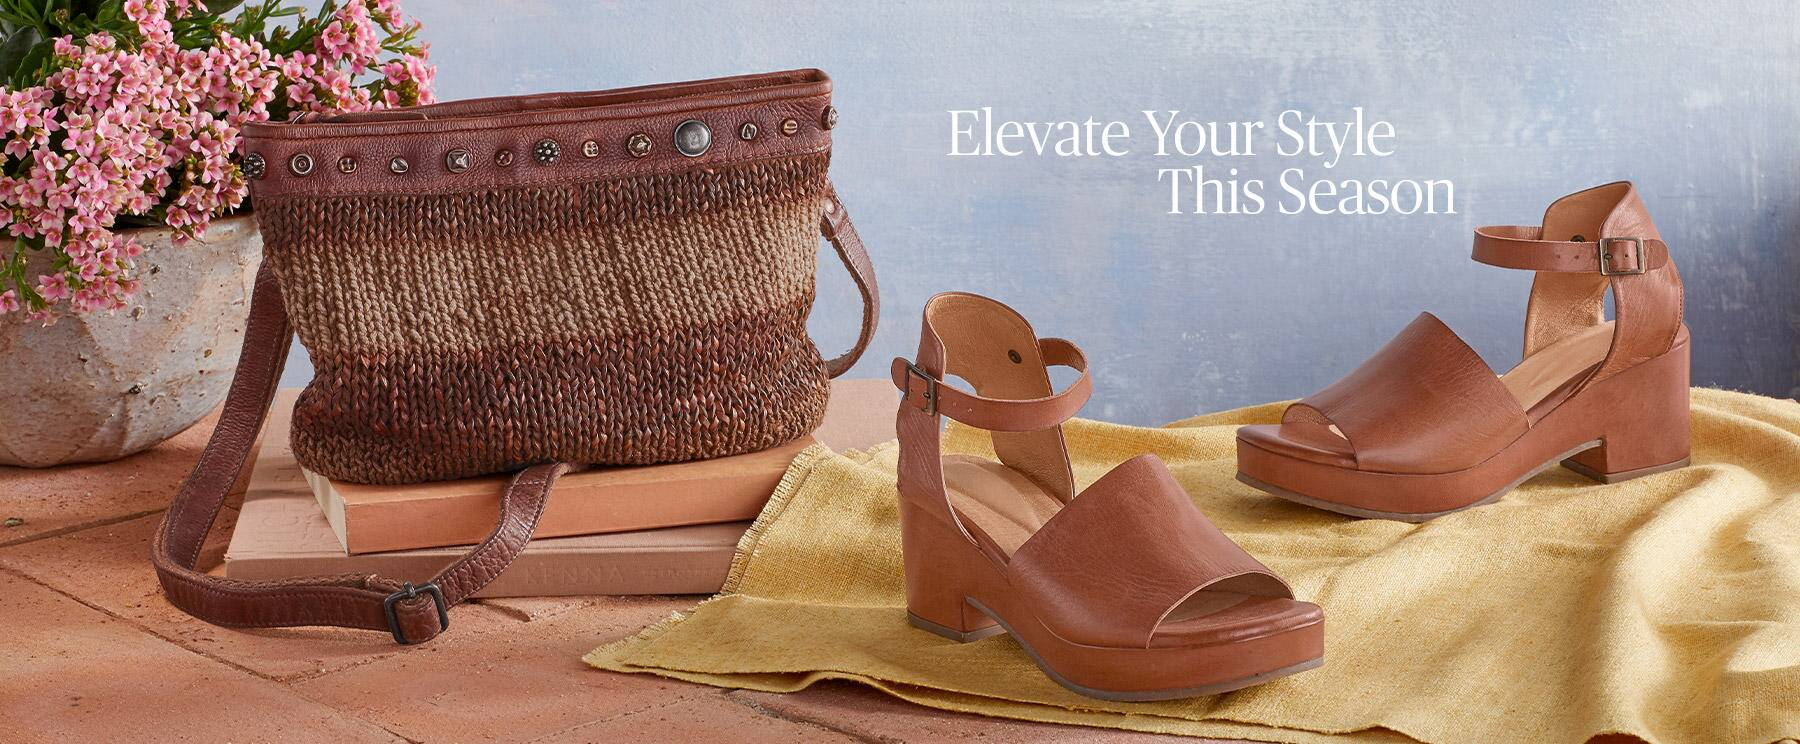 Elevate Your Style this Season